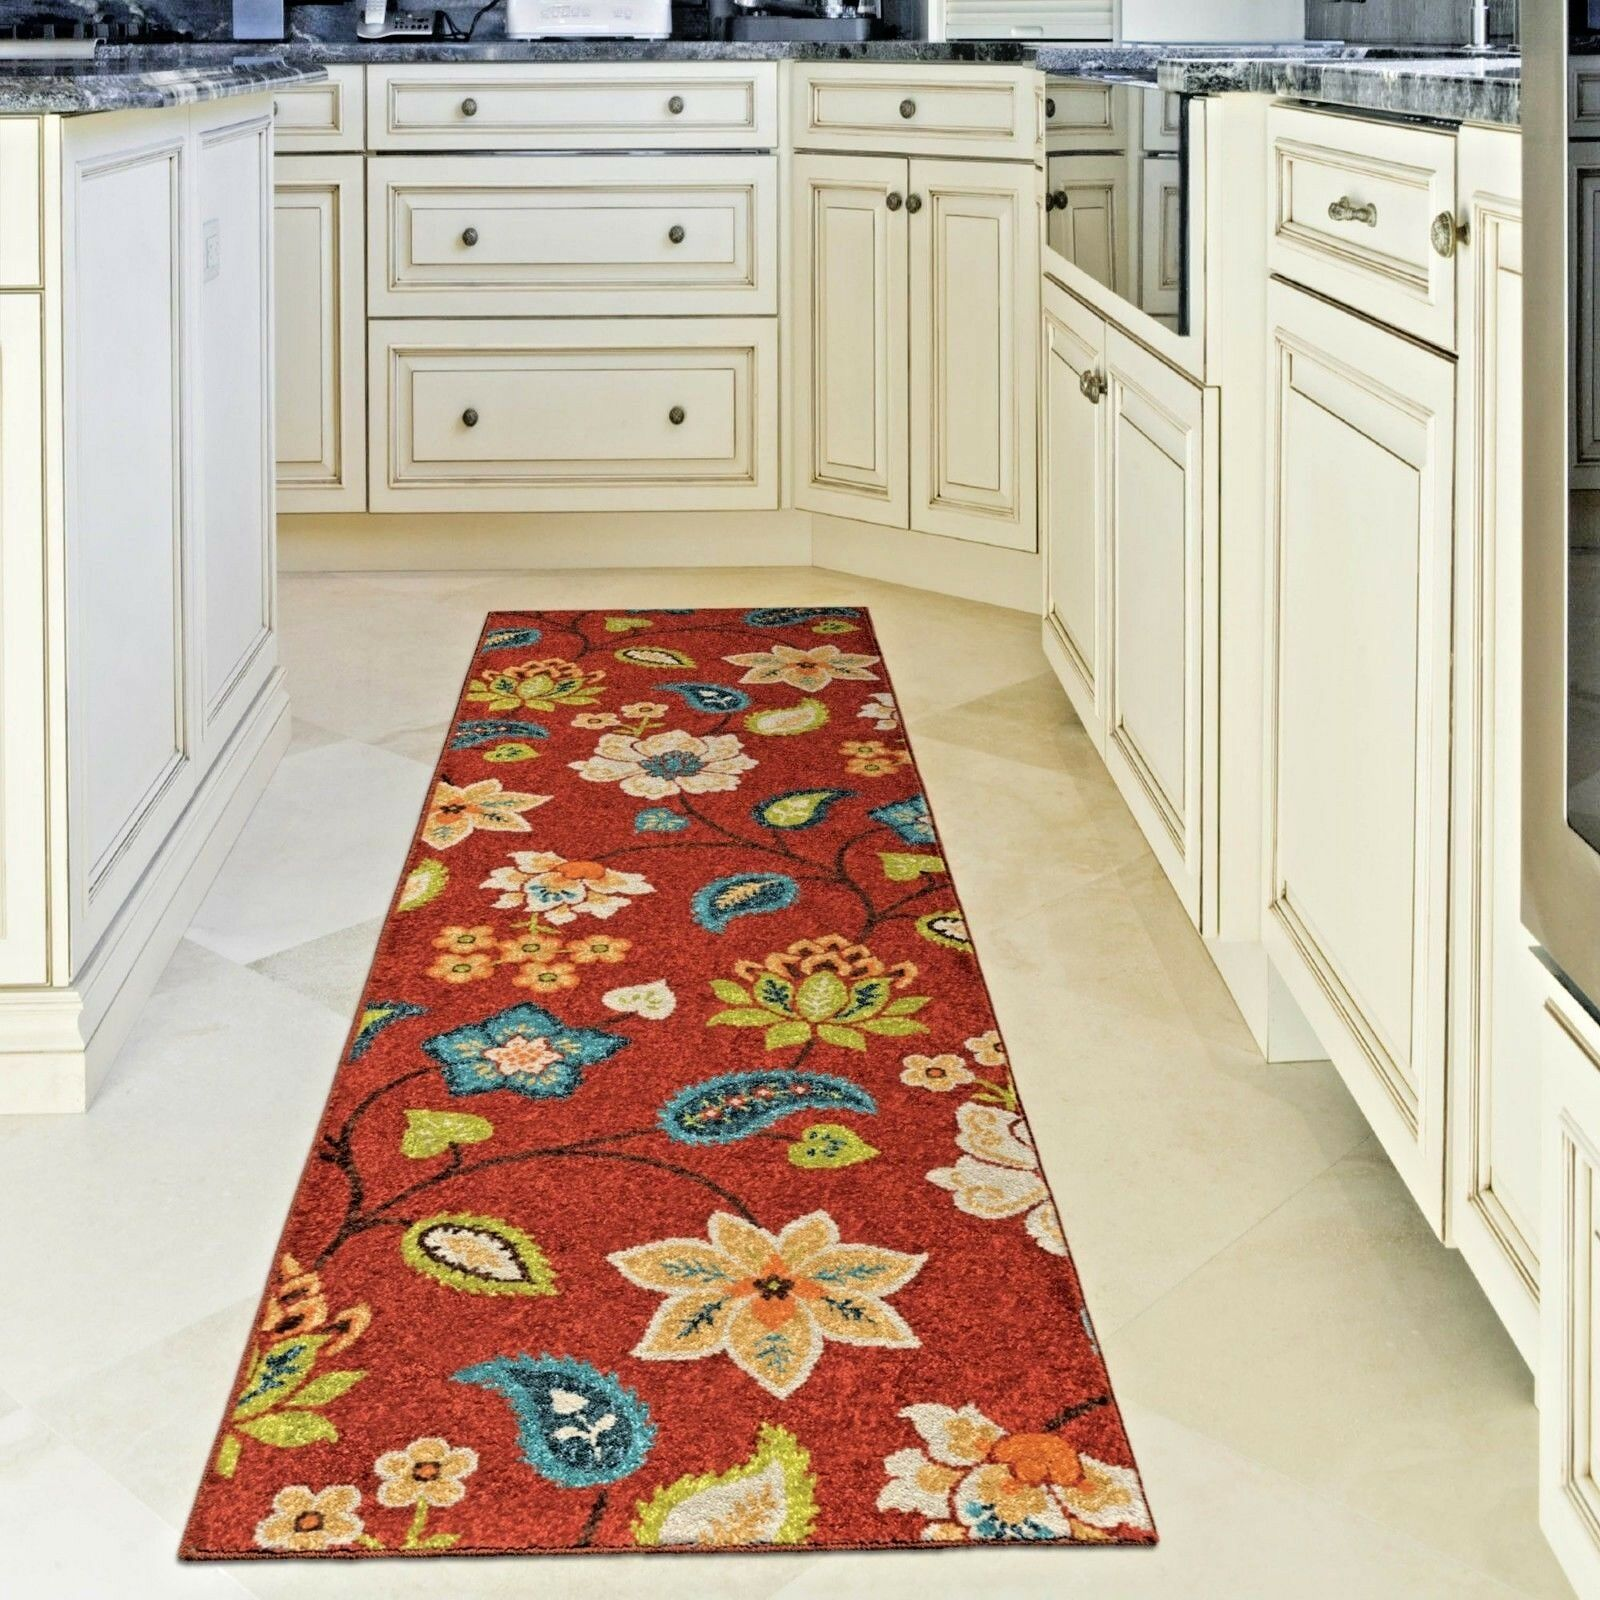 Kitchen Rugs Details About Kitchen Rugs Carpet Area Rug Runners Outdoor Carpet Cute Red Patio Runner Rugs